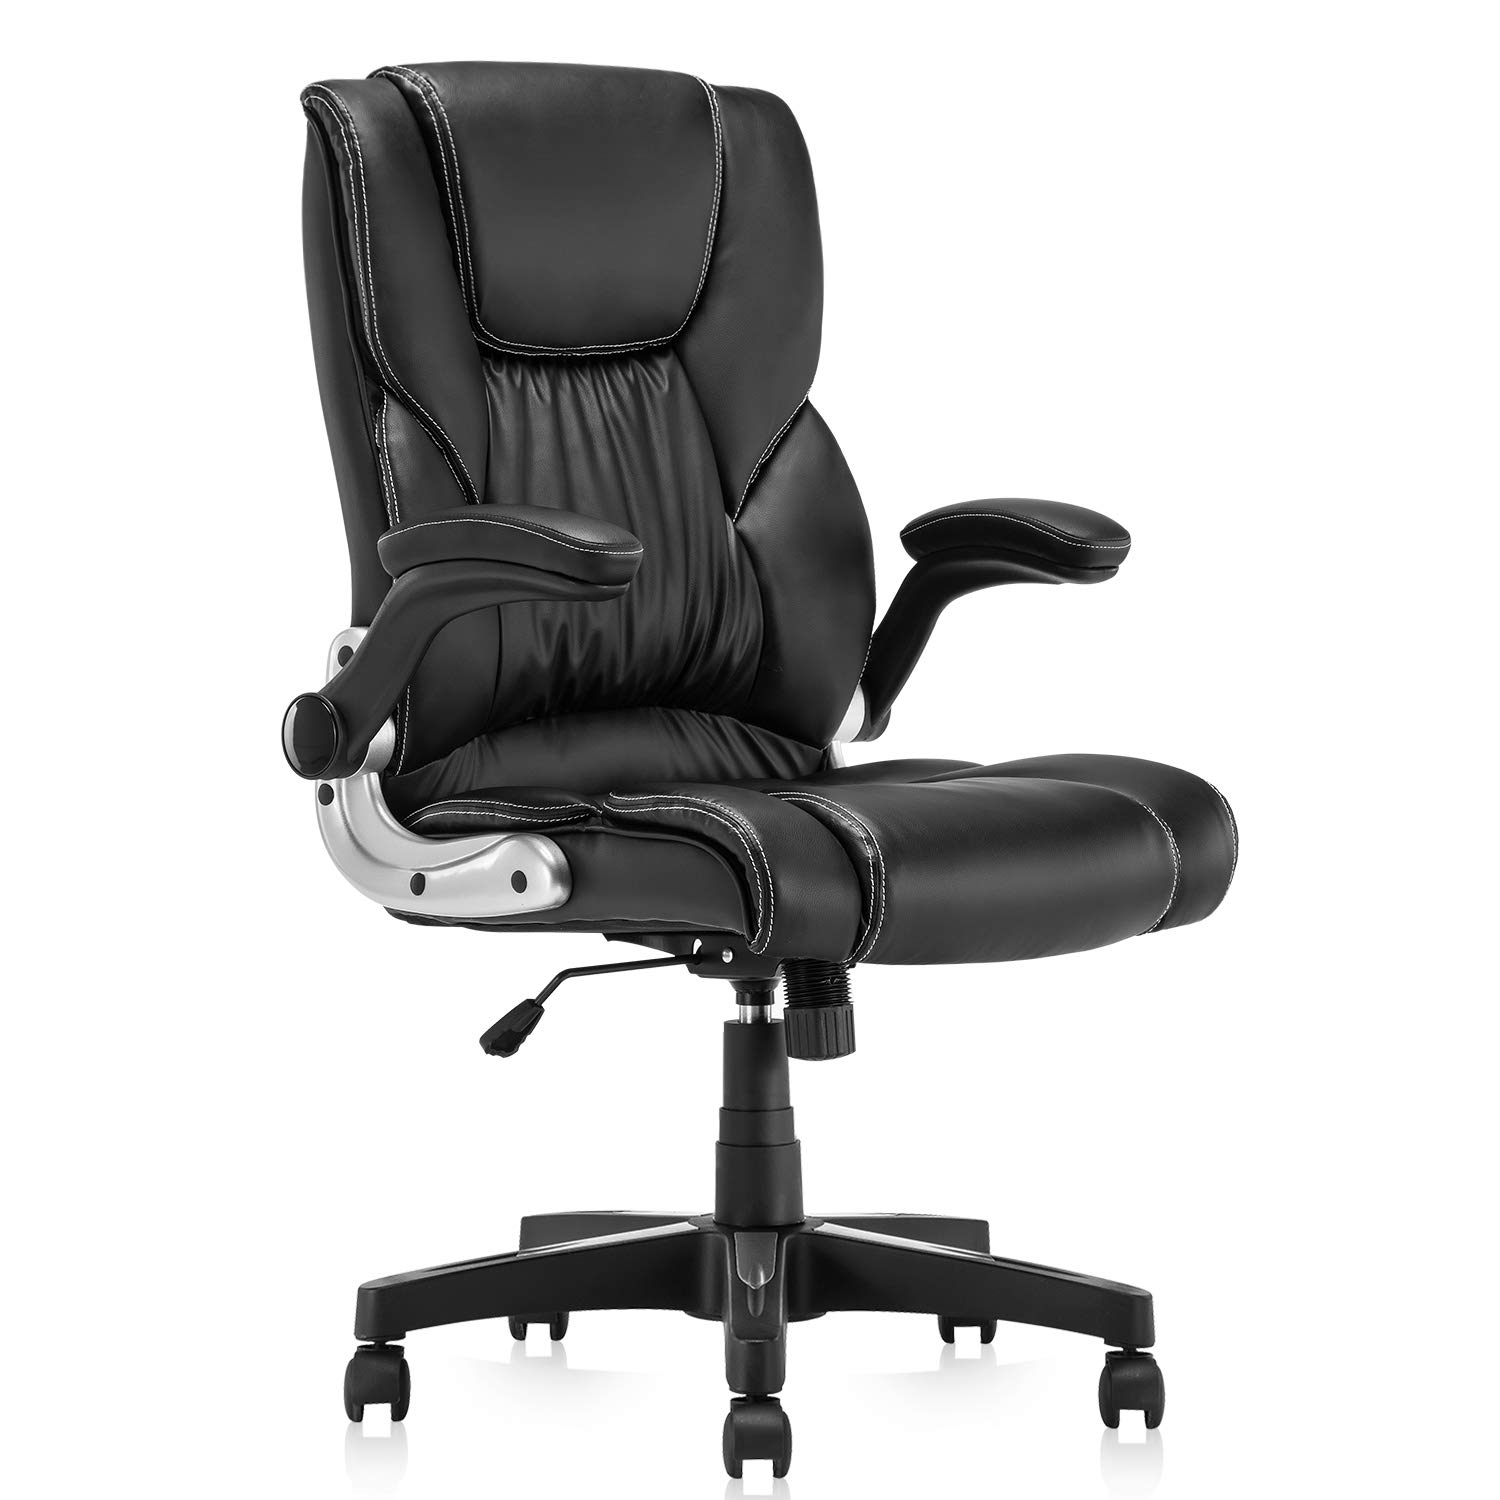 YAMASORO Ergonomic Leather Office Chair High Back Computer Executive Desk Chair with Armrest Black